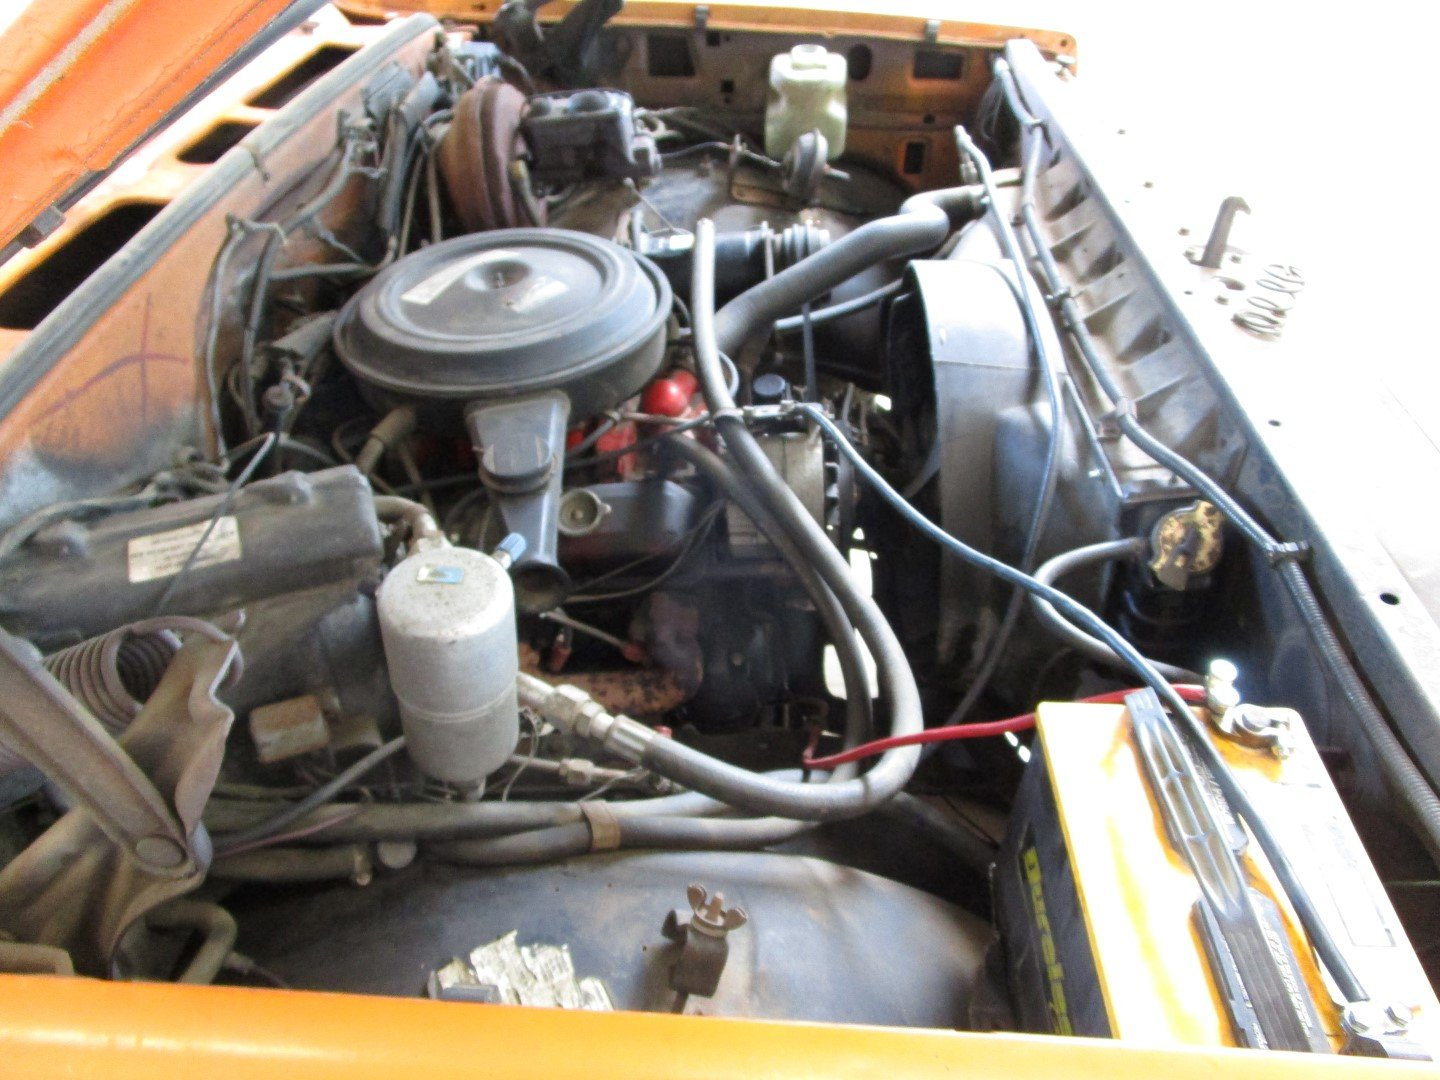 1976 GMC 15 Sierra Classic 350CU V8 Longbed Pick Up For Sale (picture 5 of 6)